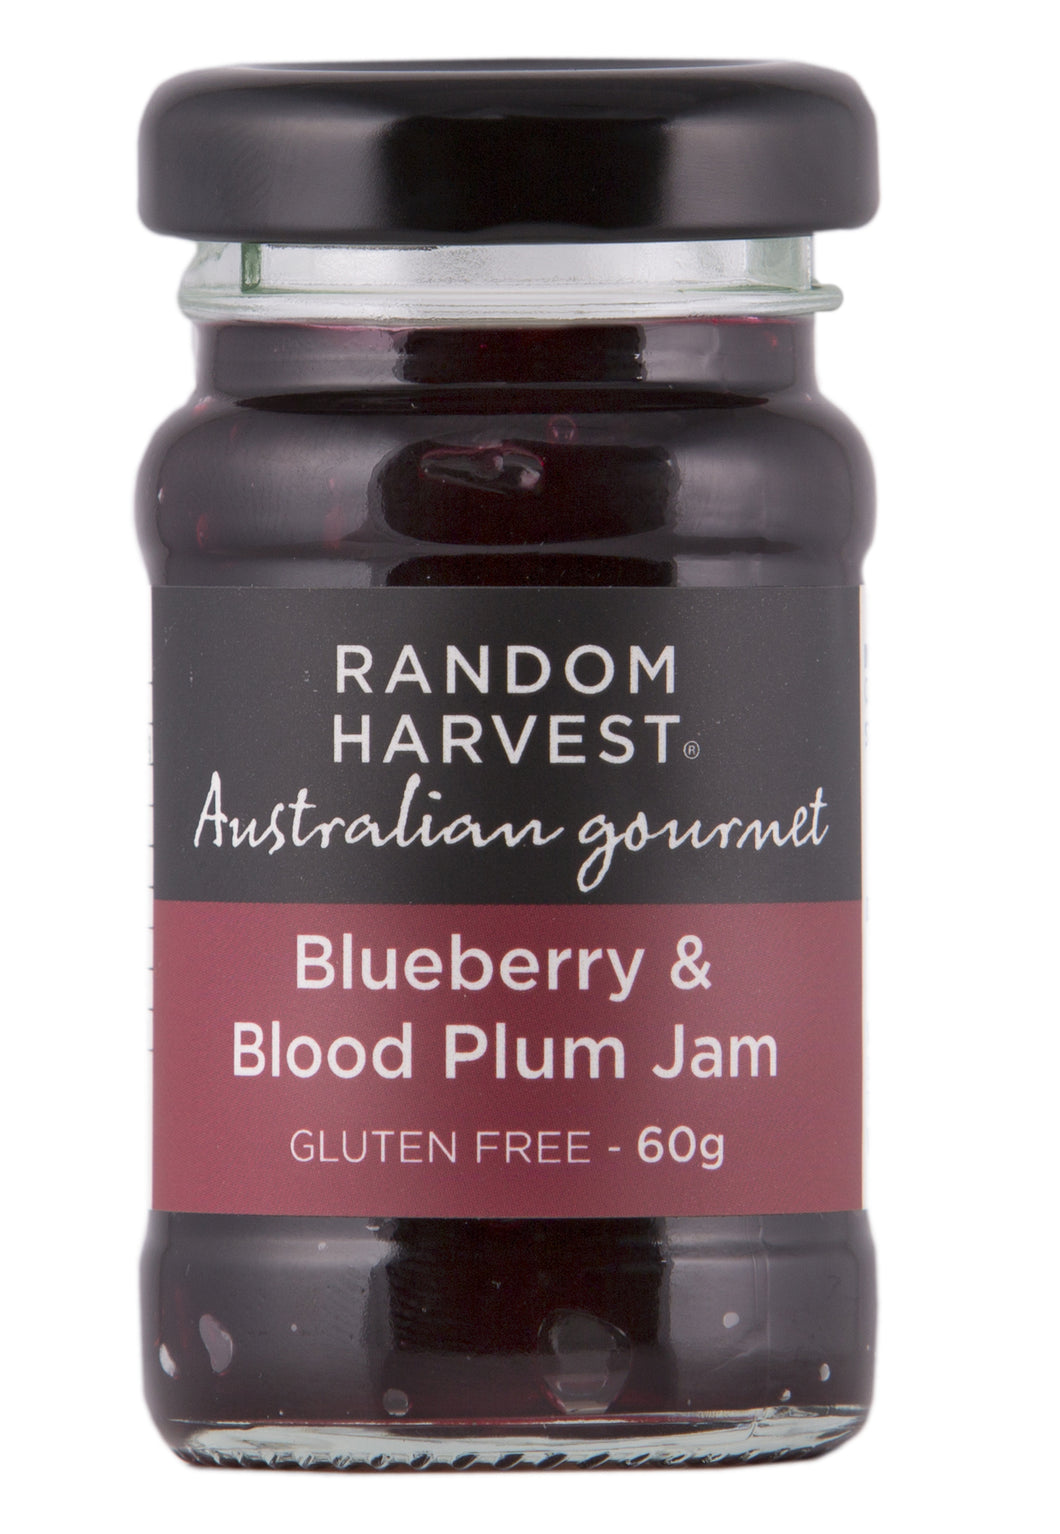 Blueberry & Blood Plum Jam 60g